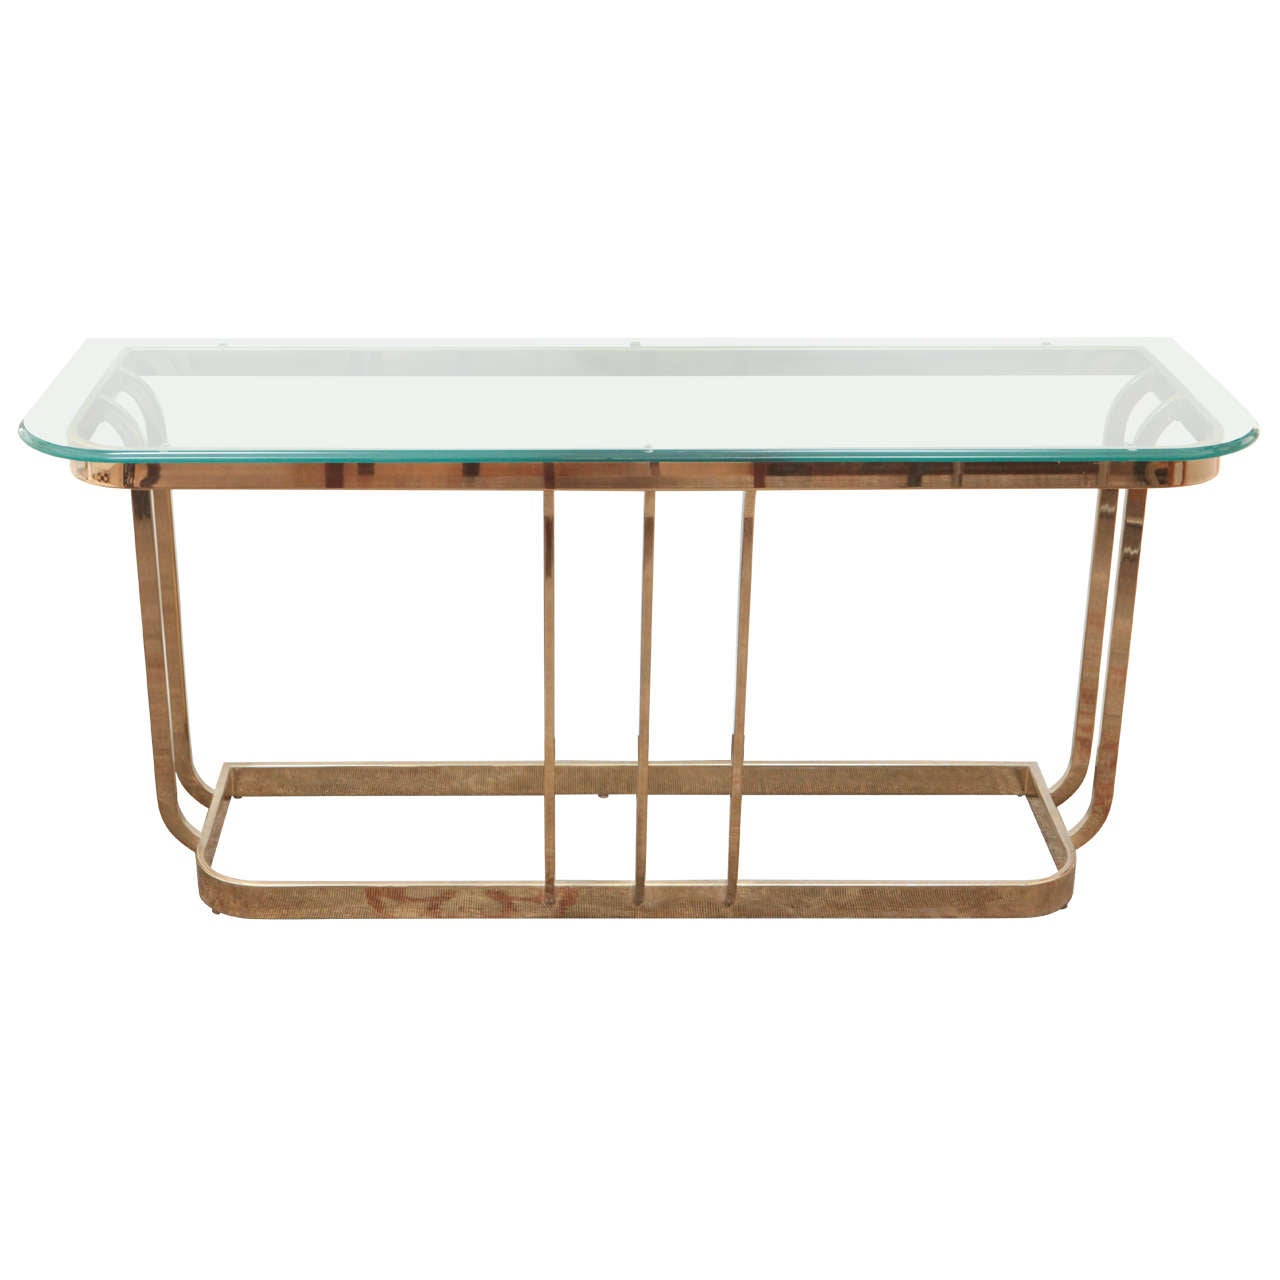 Milo Baugman Console Table At 1stdibs. Full resolution  image, nominally Width 1280 Height 1280 pixels, image with #714A31.